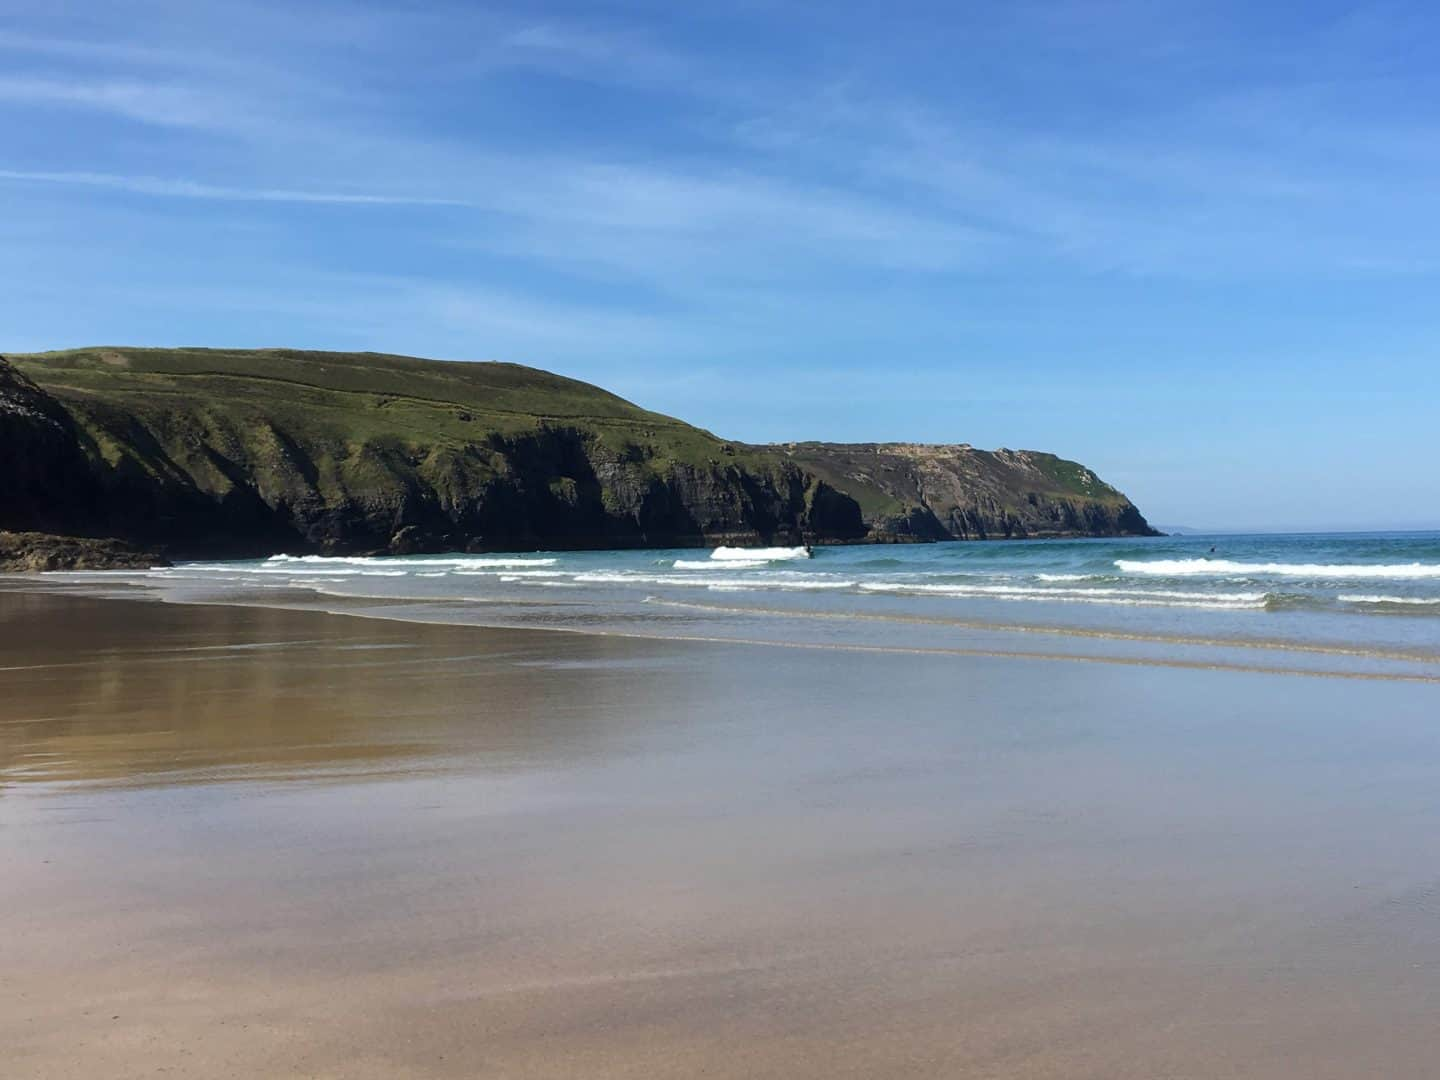 The Most Beautiful Beaches To Visit In Cornwall And Devon - Perranporth